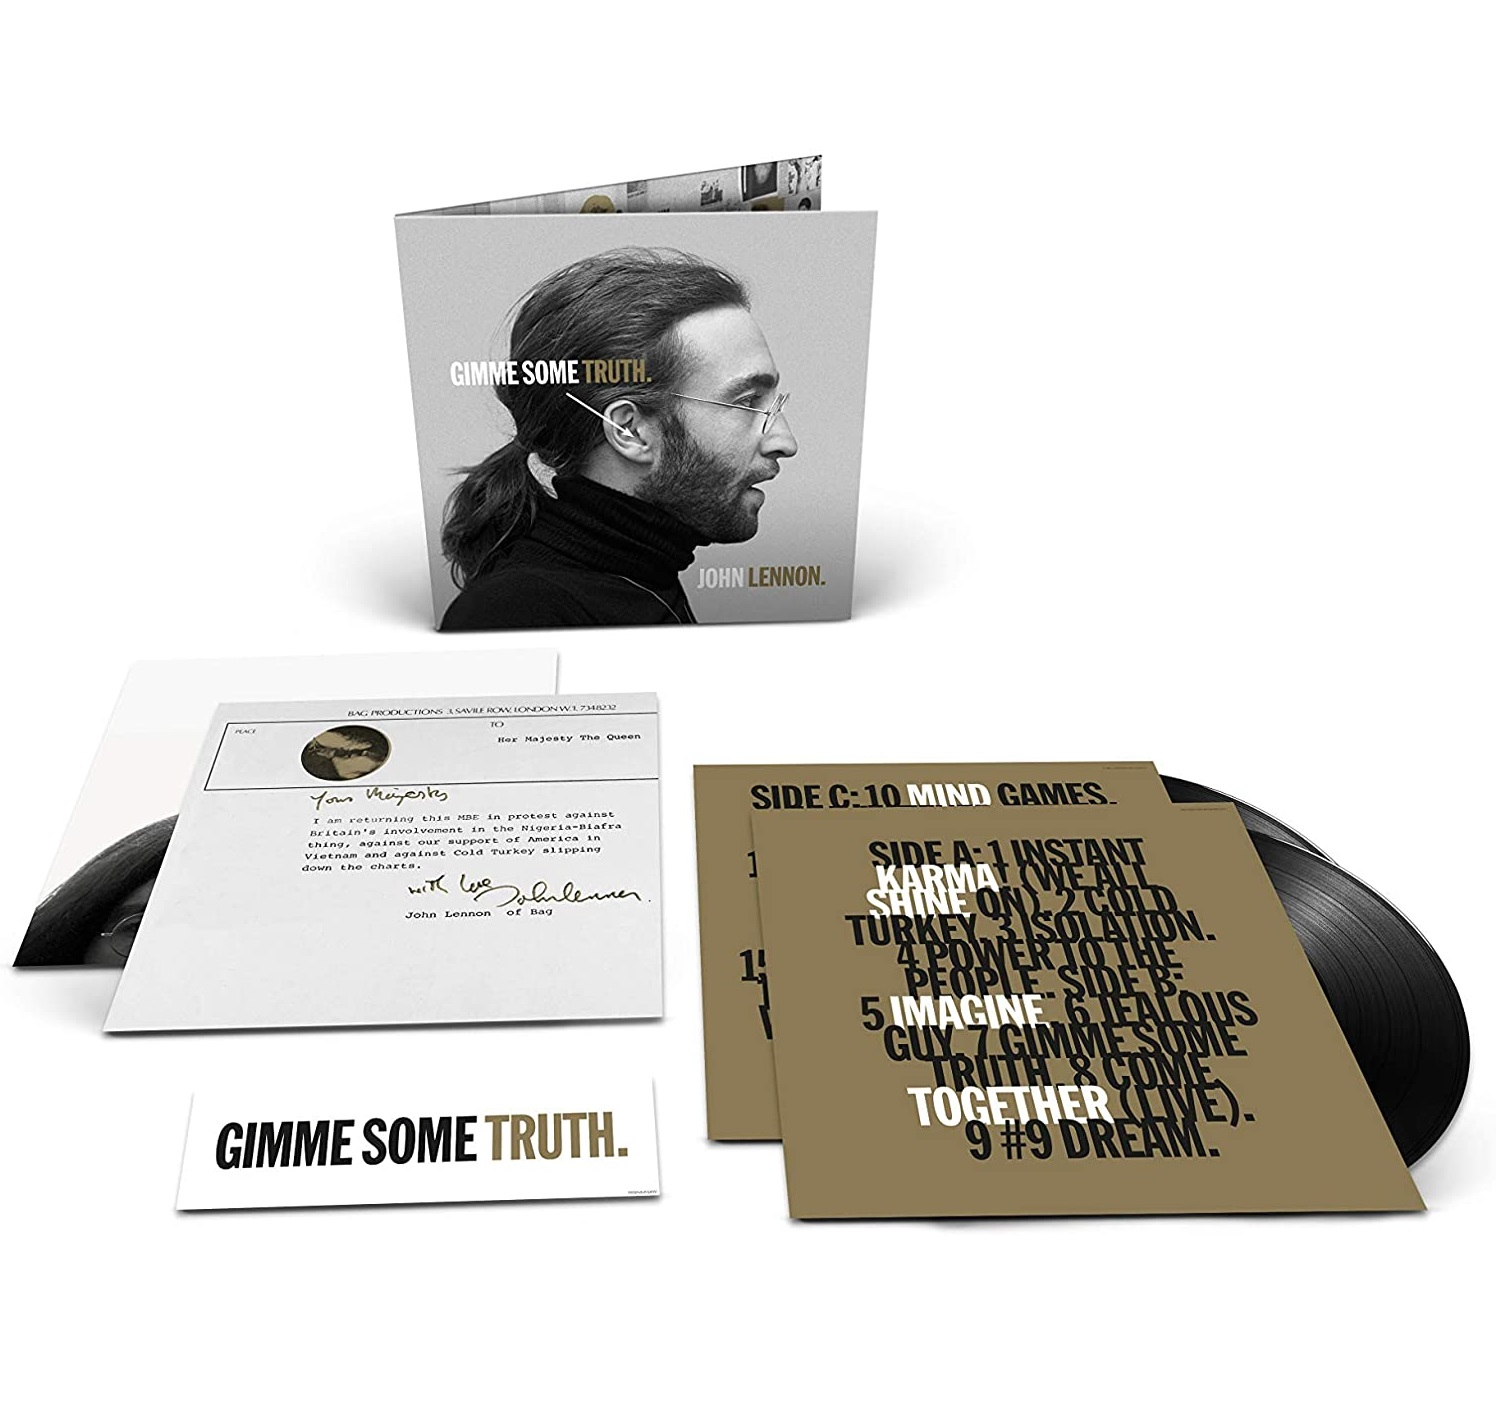 Gimme Some Truth. - John Lennon - Musik -  - 0602435001869 - 9/10-2020